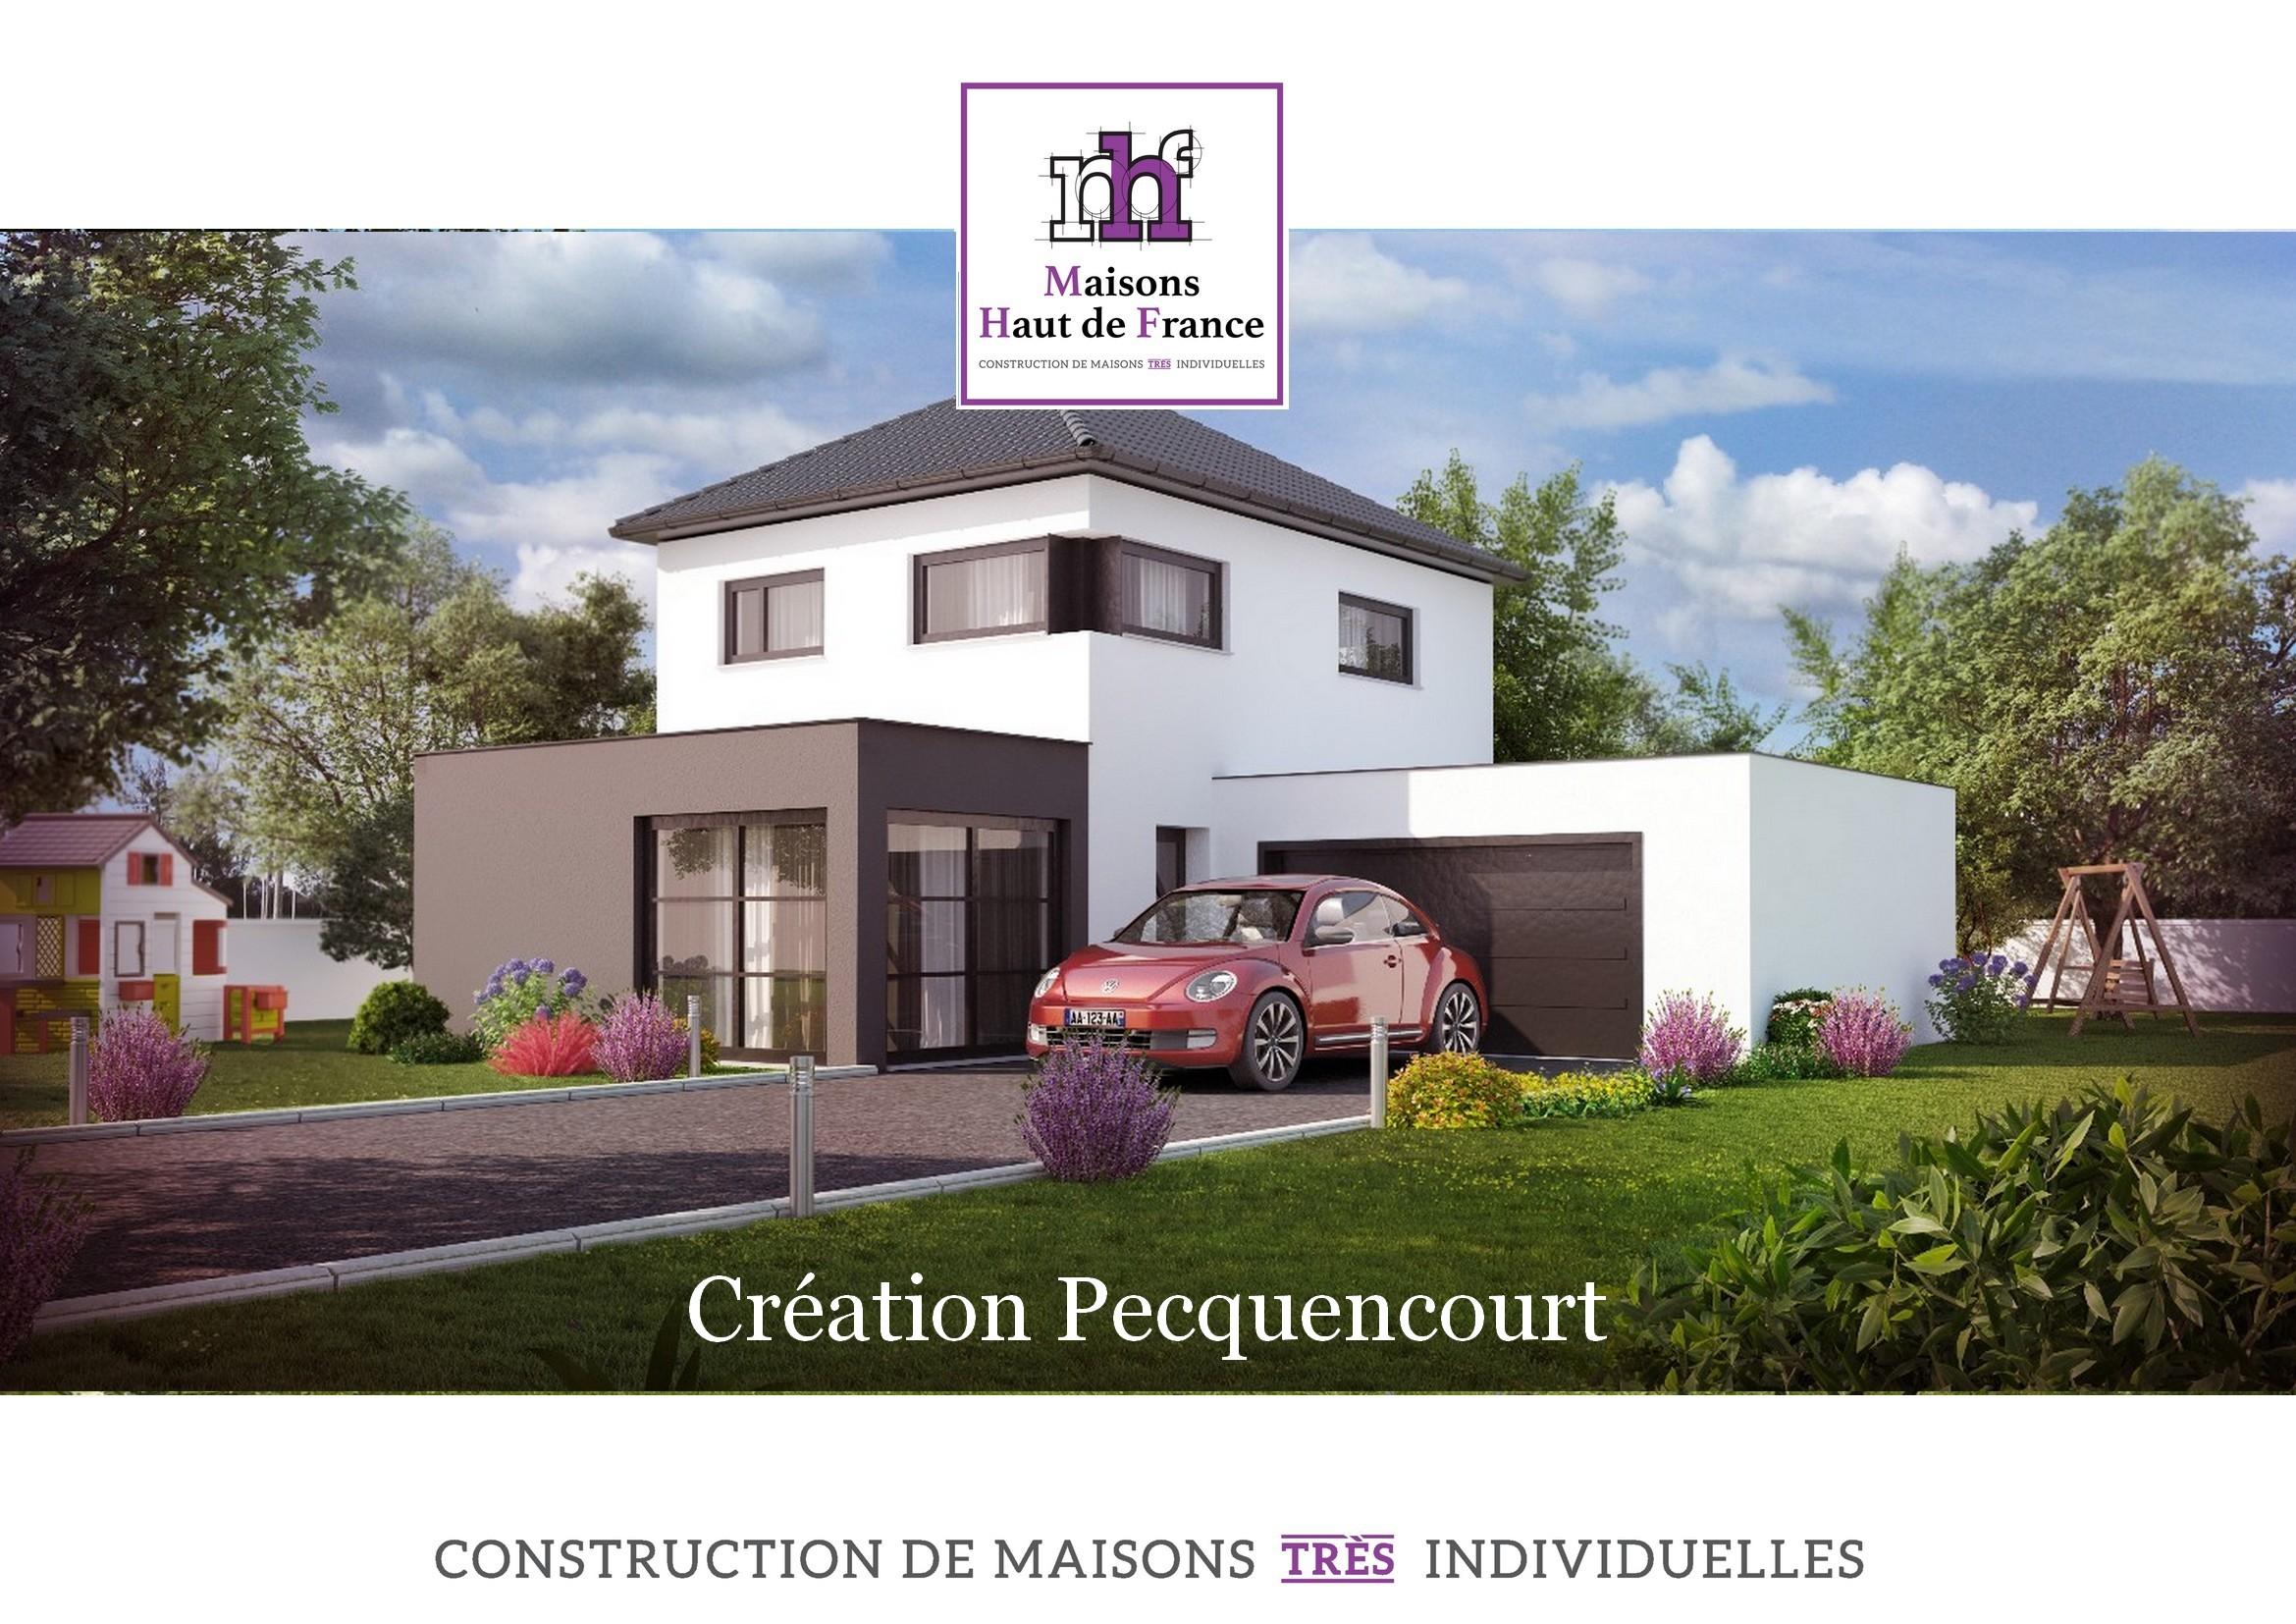 Maisons haut de france gallery of maison architecte for Visualiser une maison